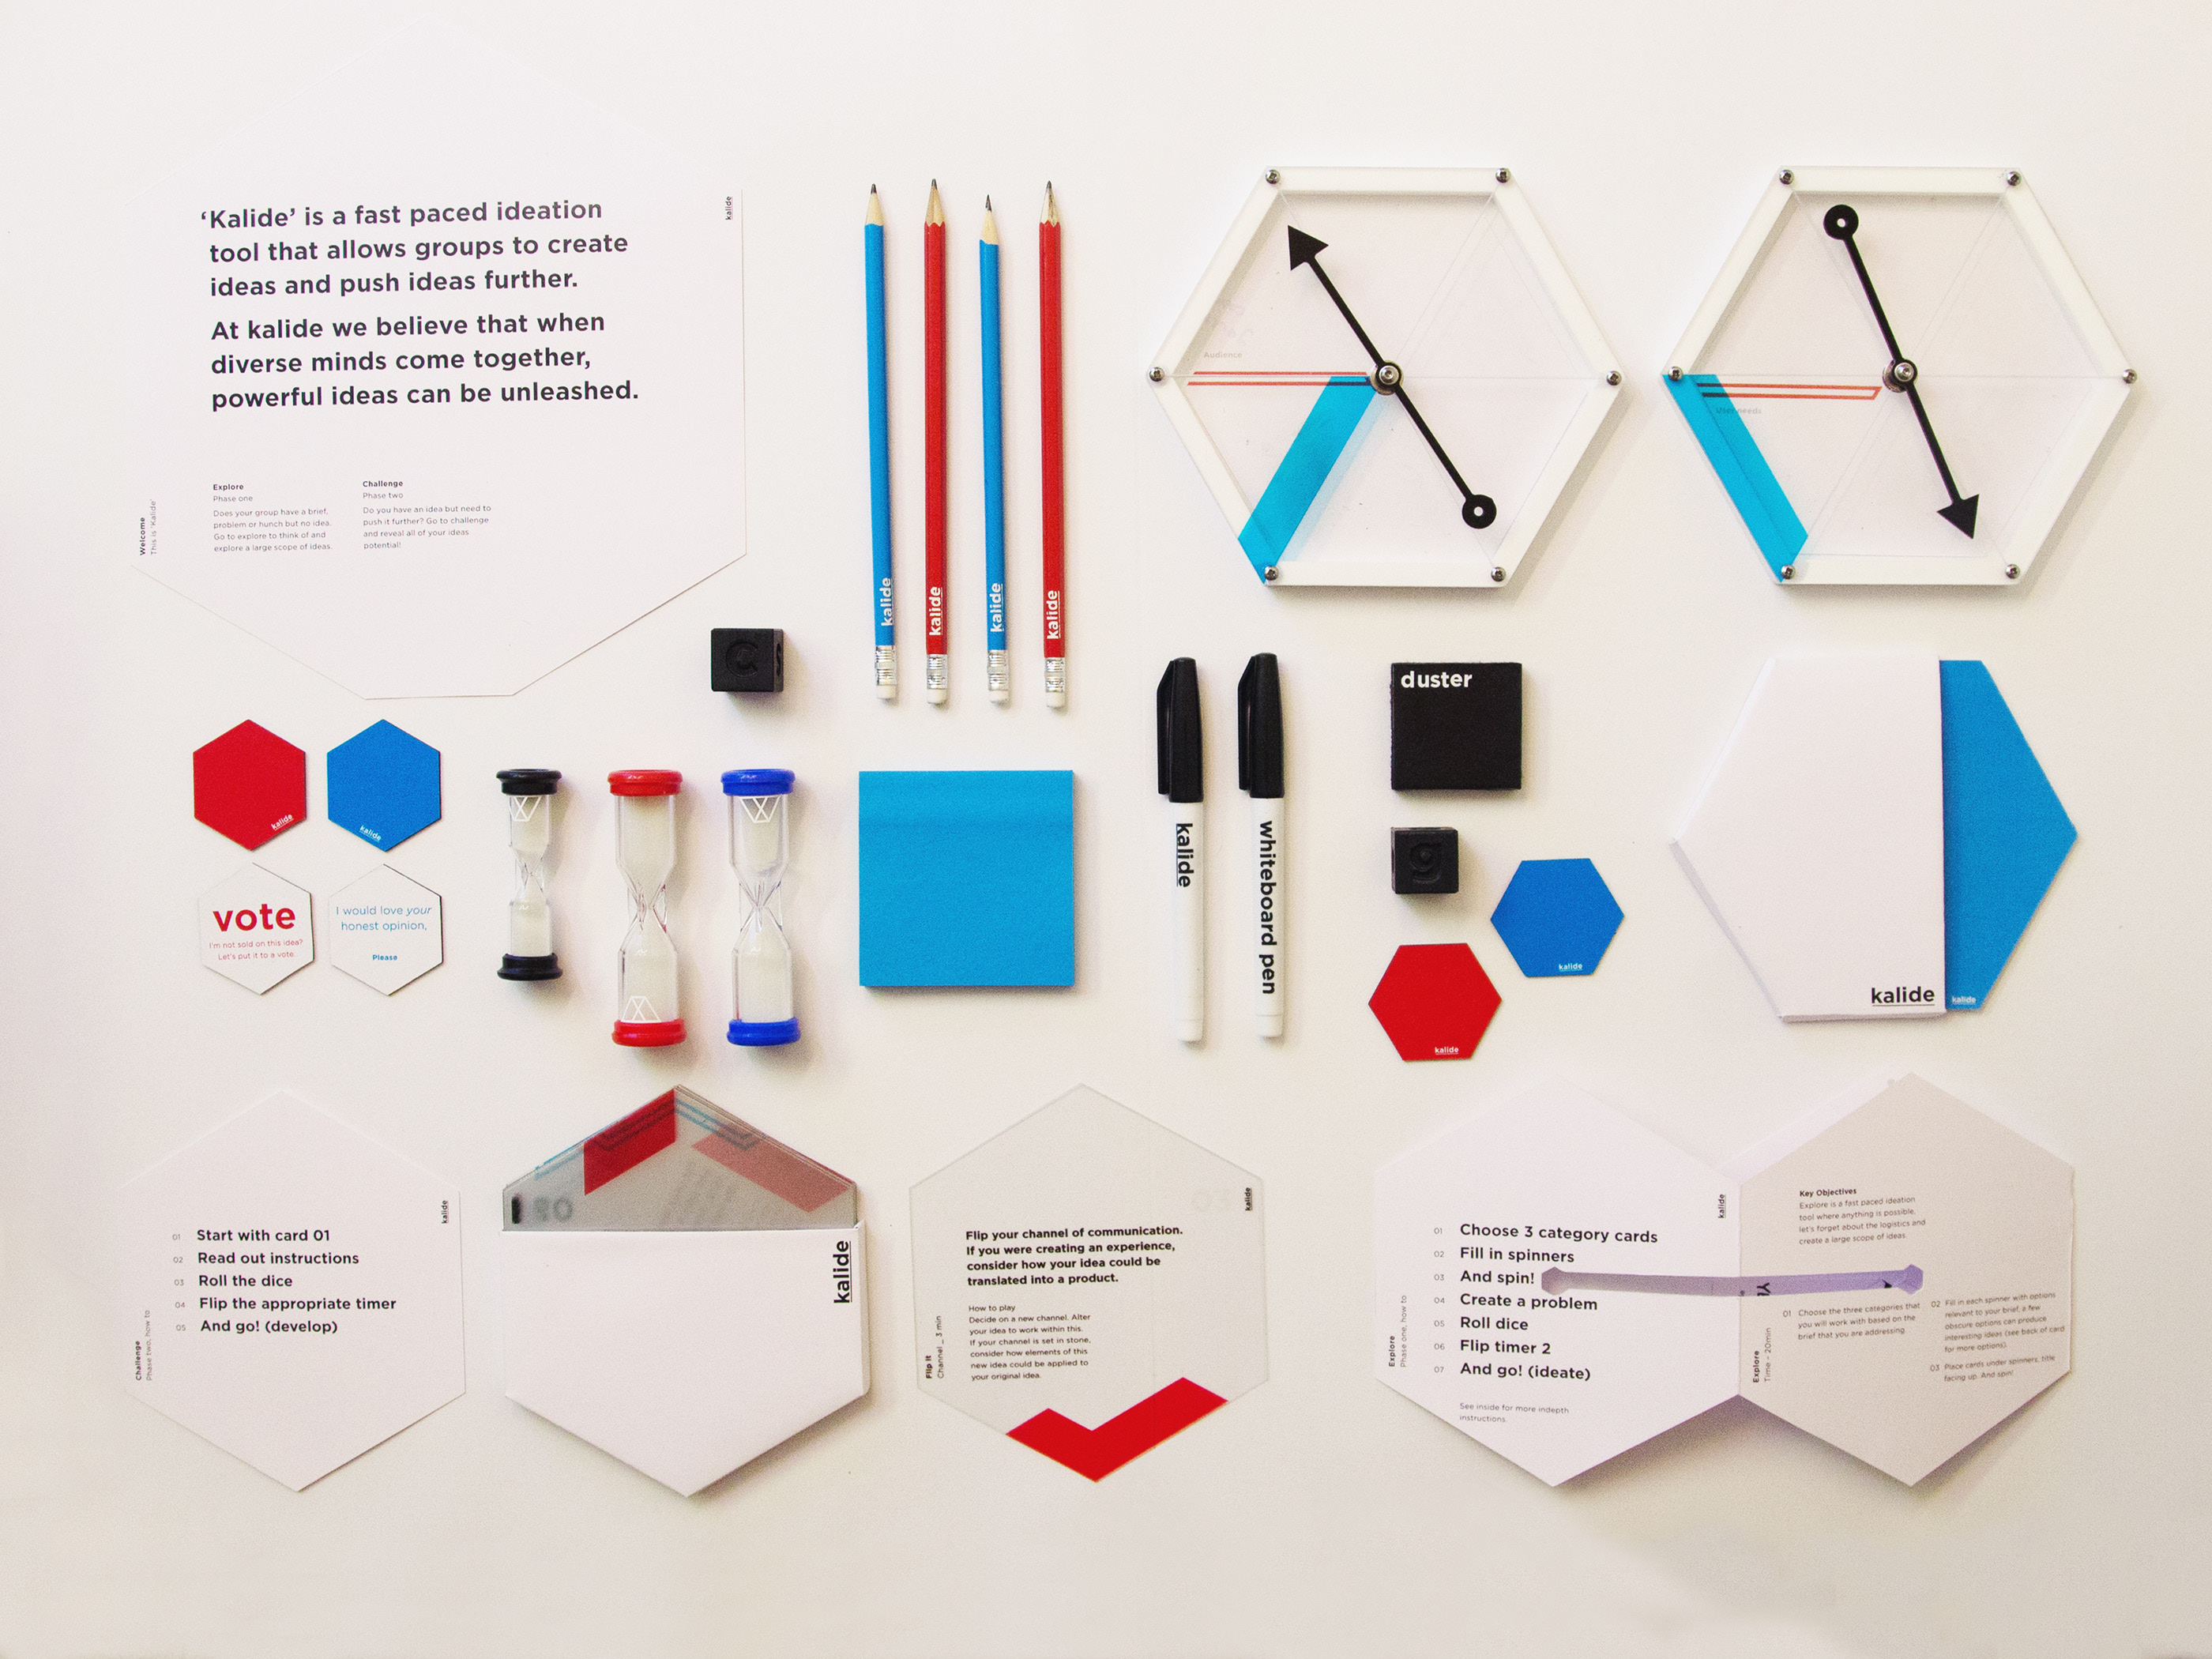 Kalide   The ideation tool on Behance